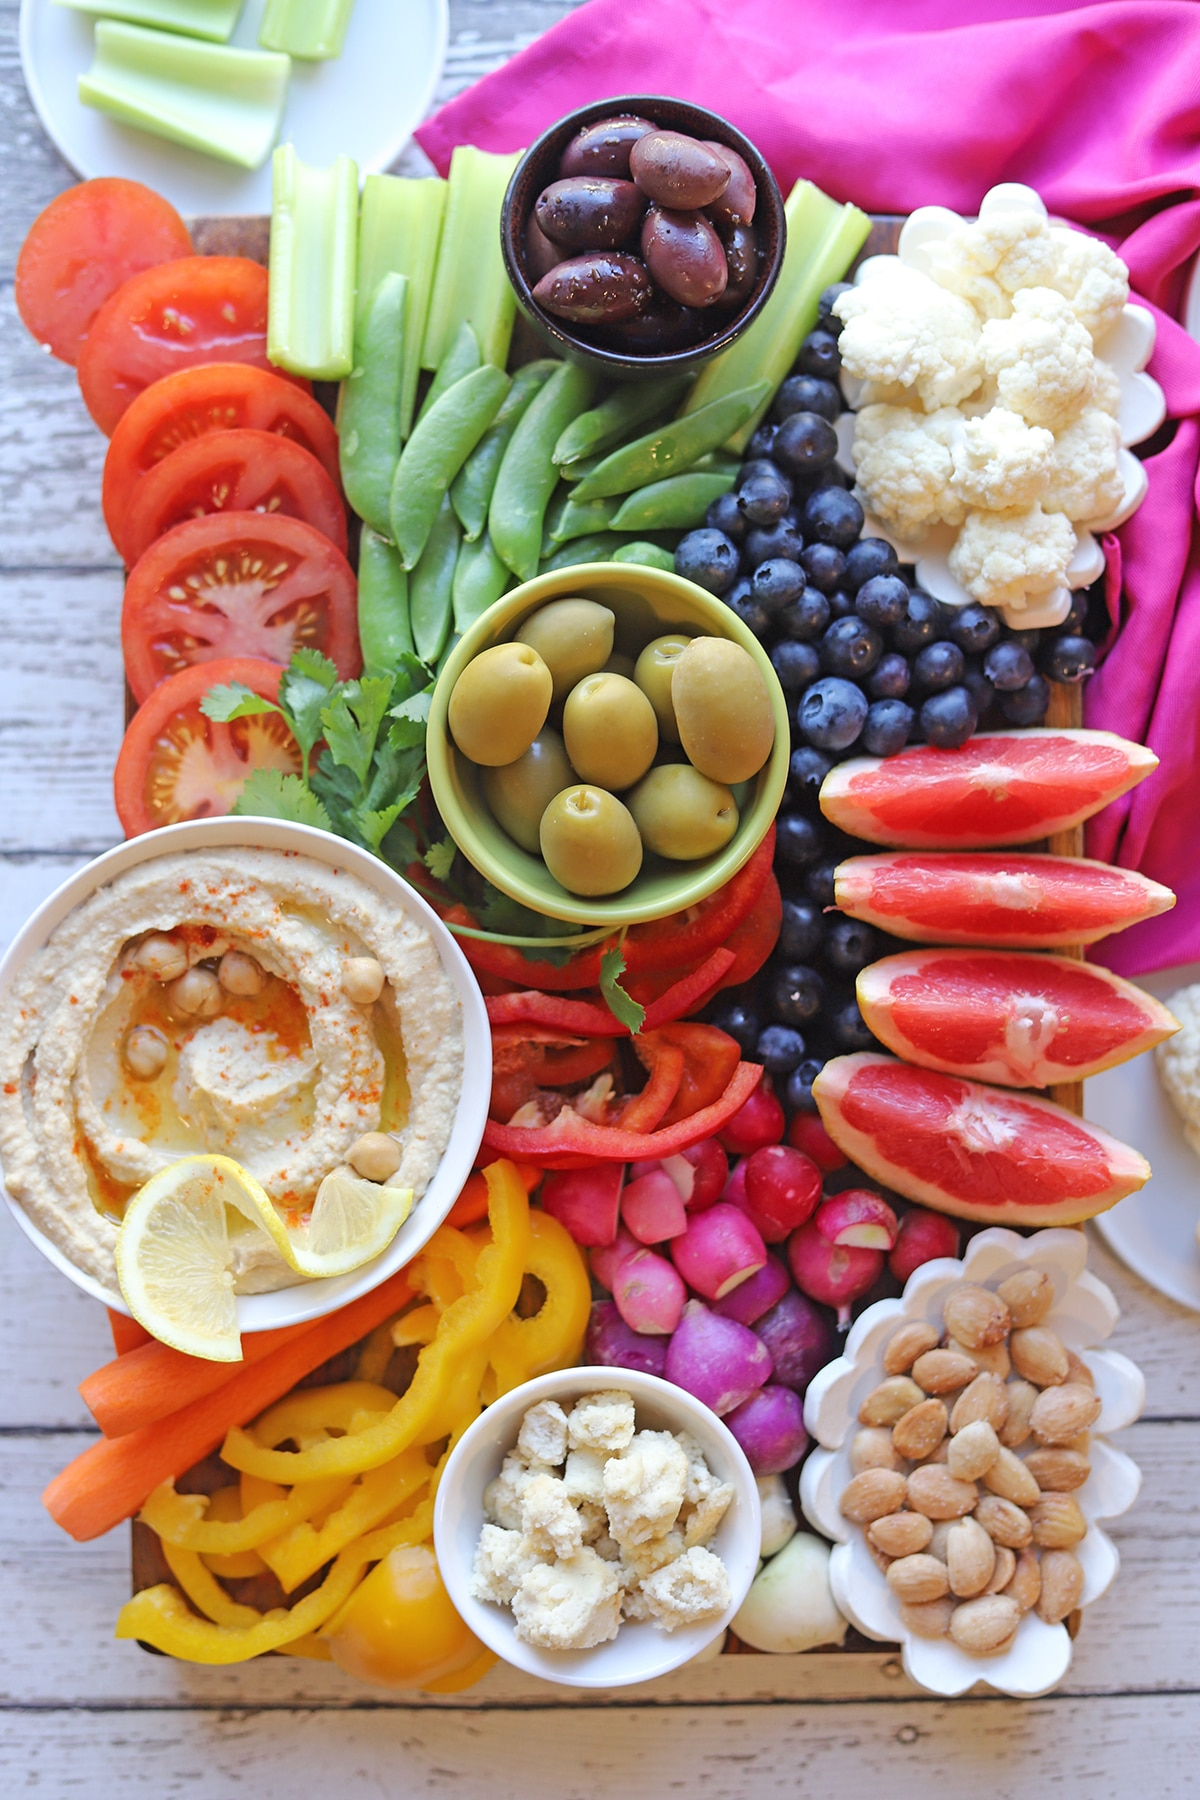 Hummus, olives, vegan feta cheese, and cauliflower on board with vegetables and fruit.